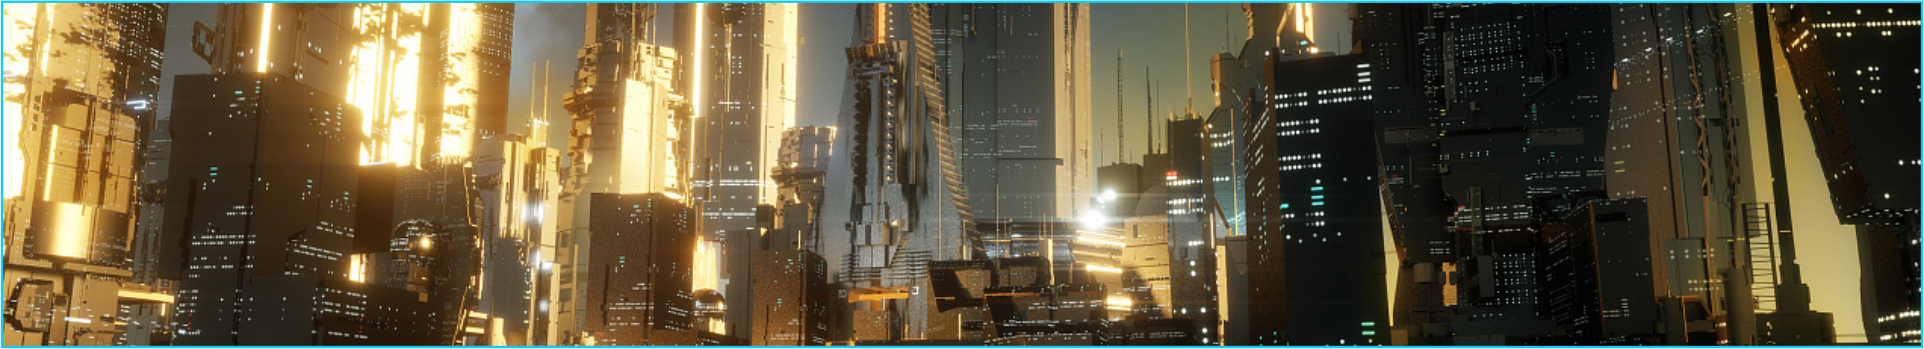 Emperor blue ecological public chain, to create the third world super intelligent city 2.0 pioneer